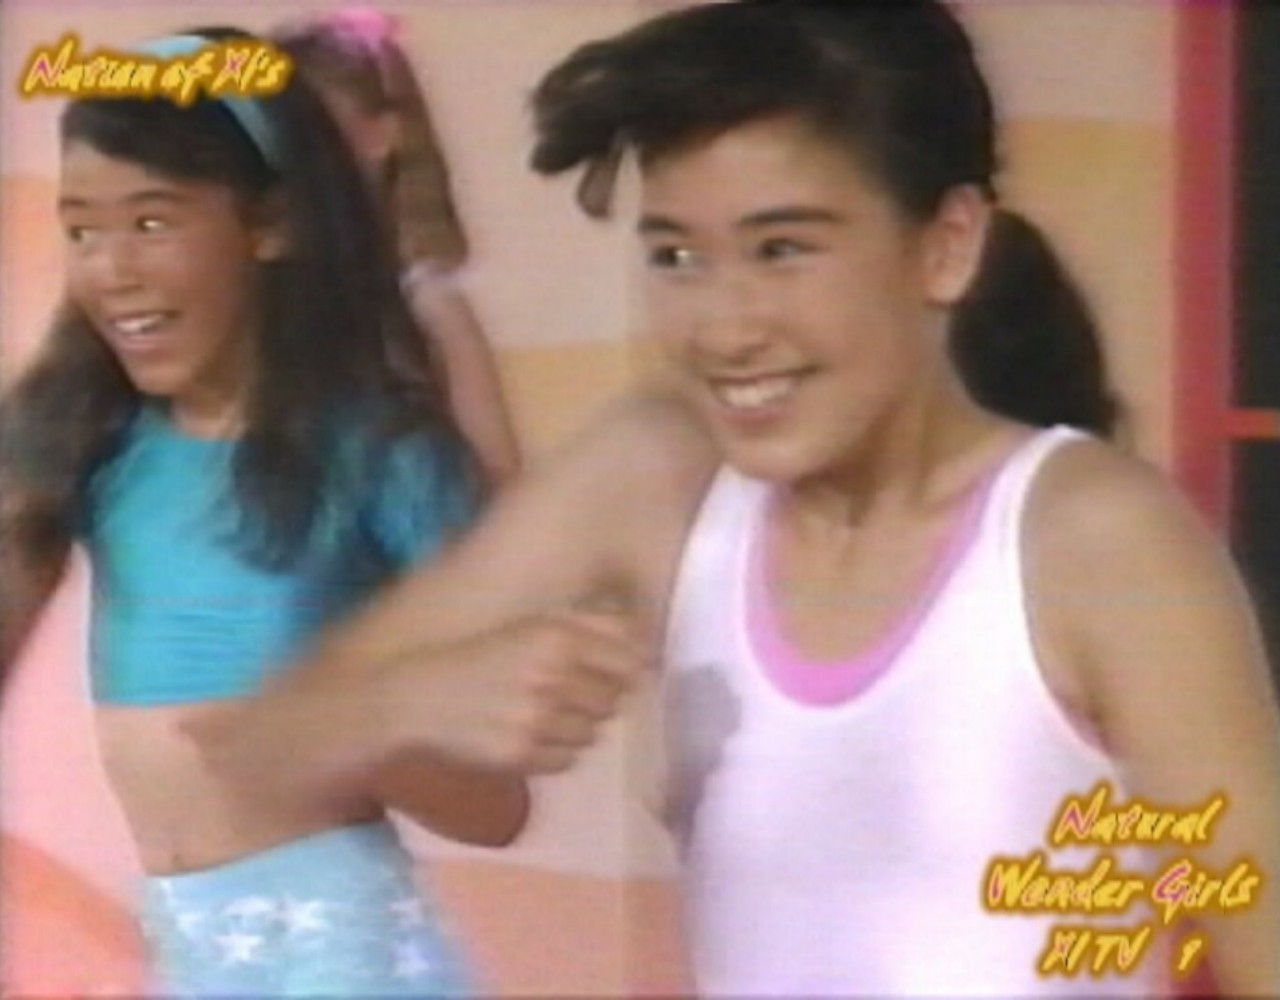 "Natural Wonder Girls! Dance Workout! ""Barbie Gets Nine Inch Nailed!"" - Lisa Mariano!"